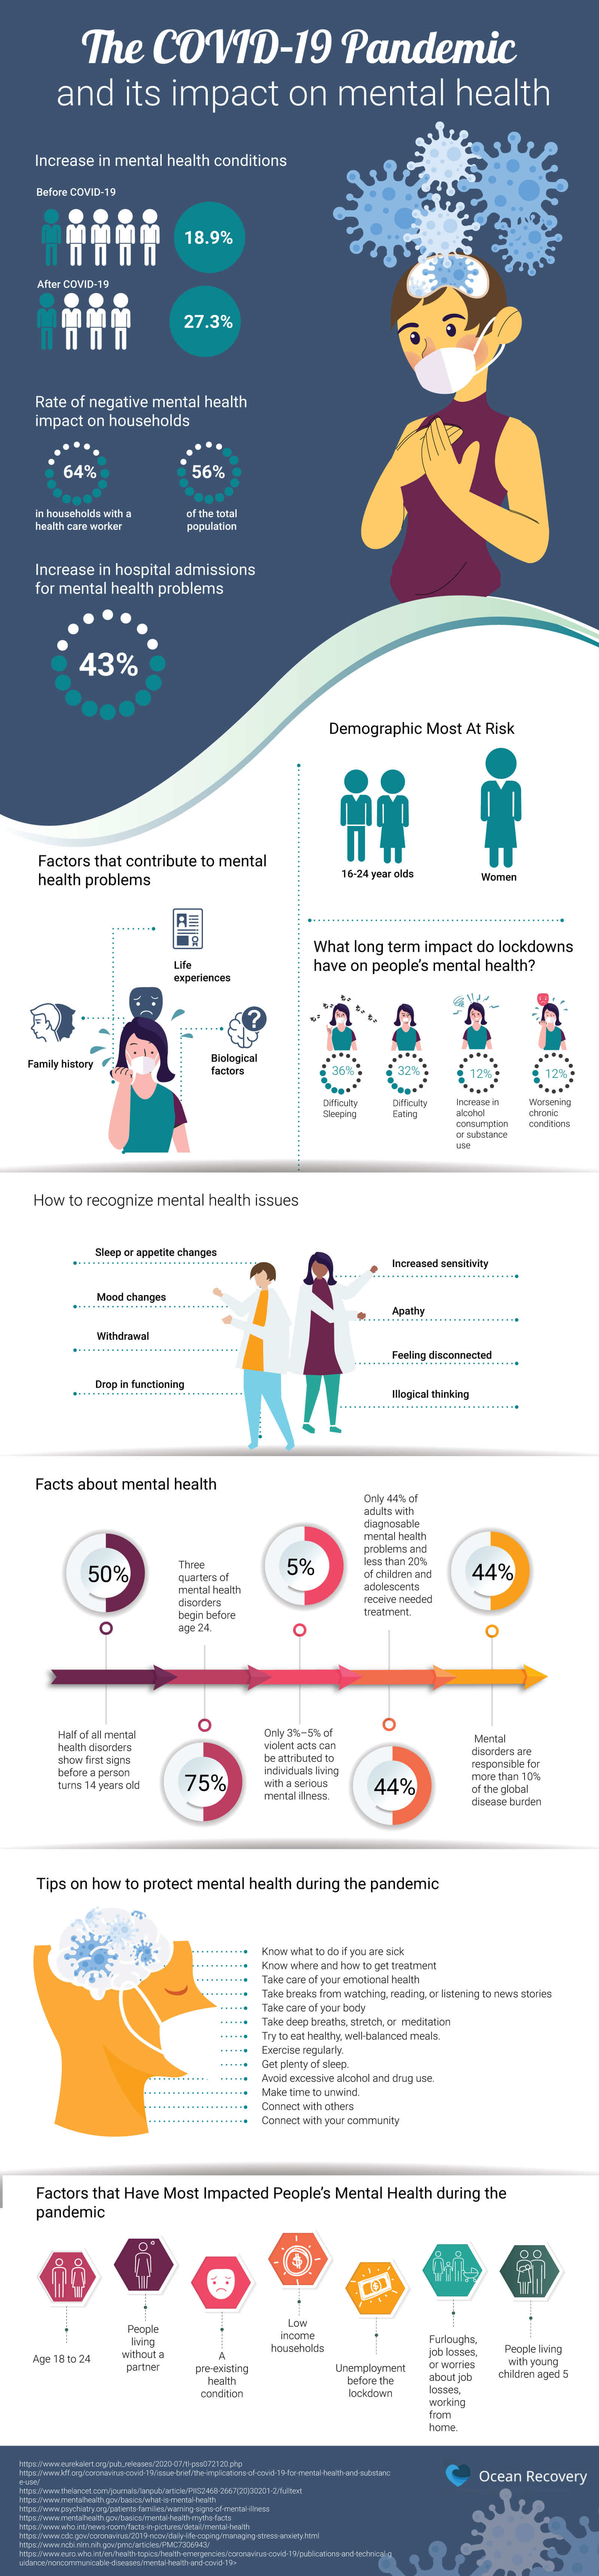 The COVID-19 Pandemic and Its Impact On Mental Health